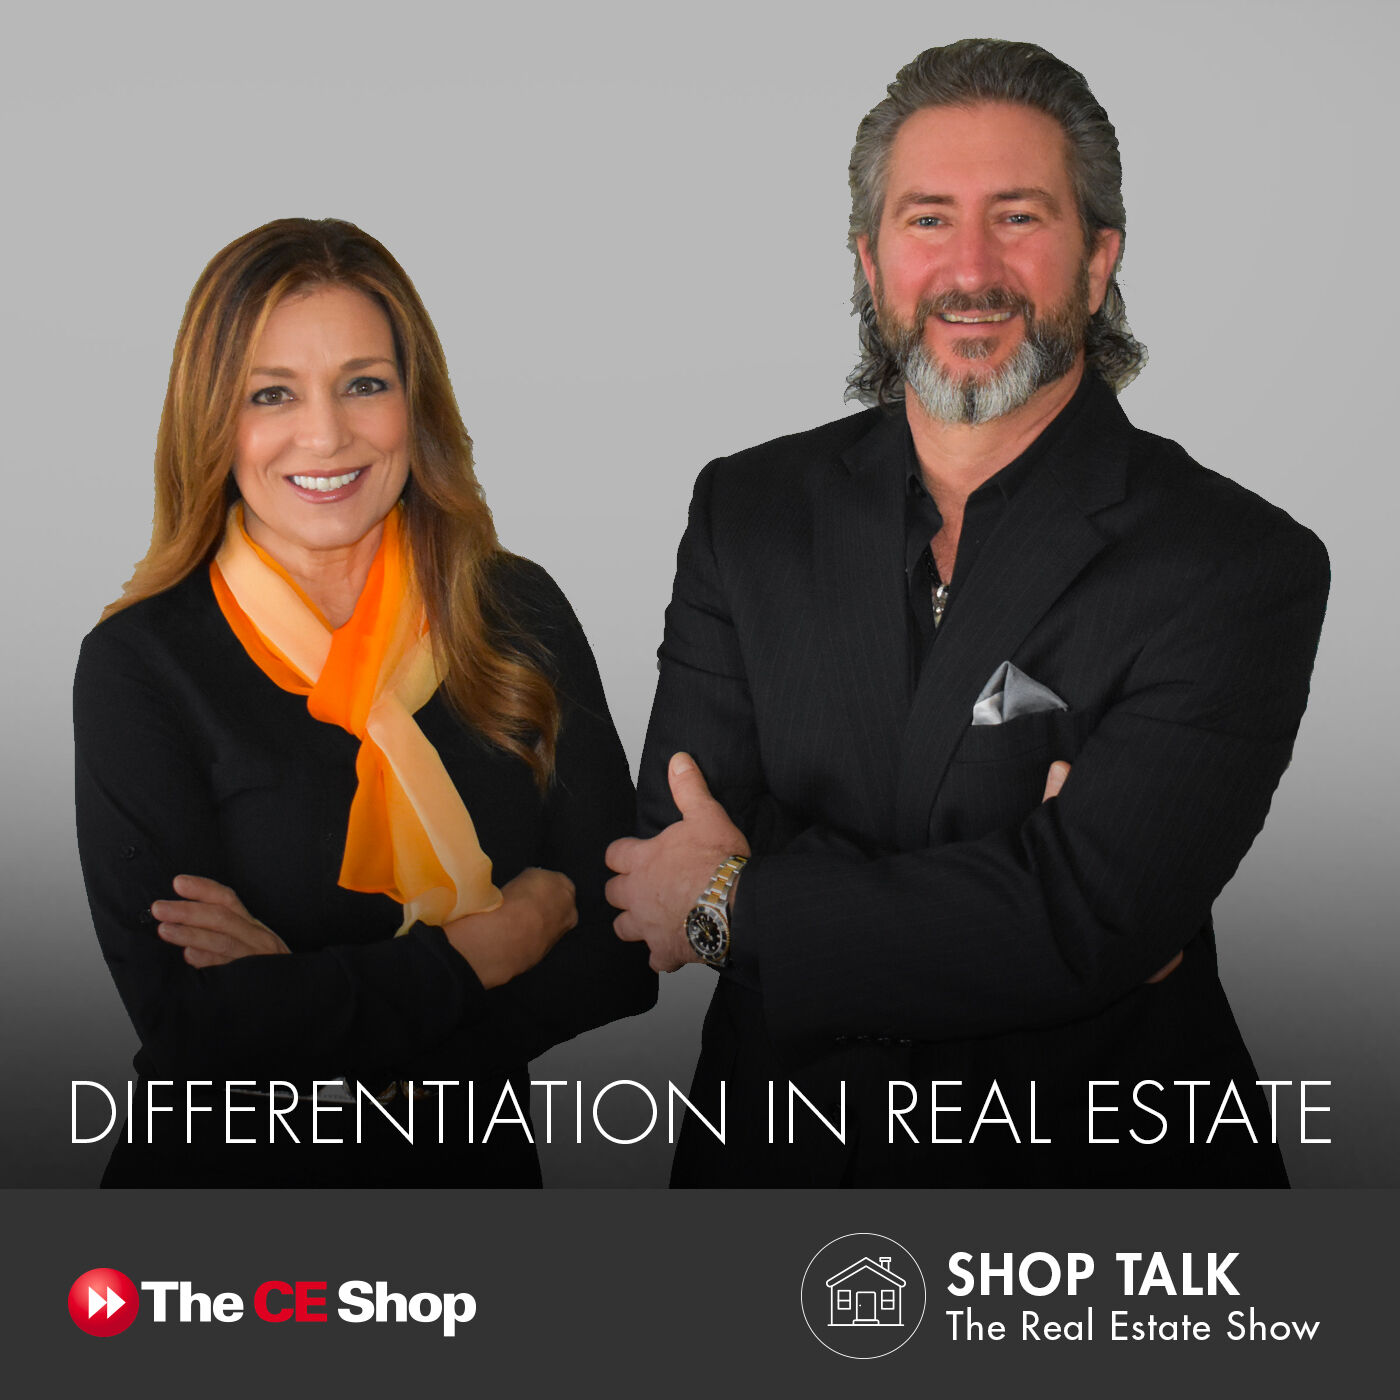 68: Differentiation in Real Estate